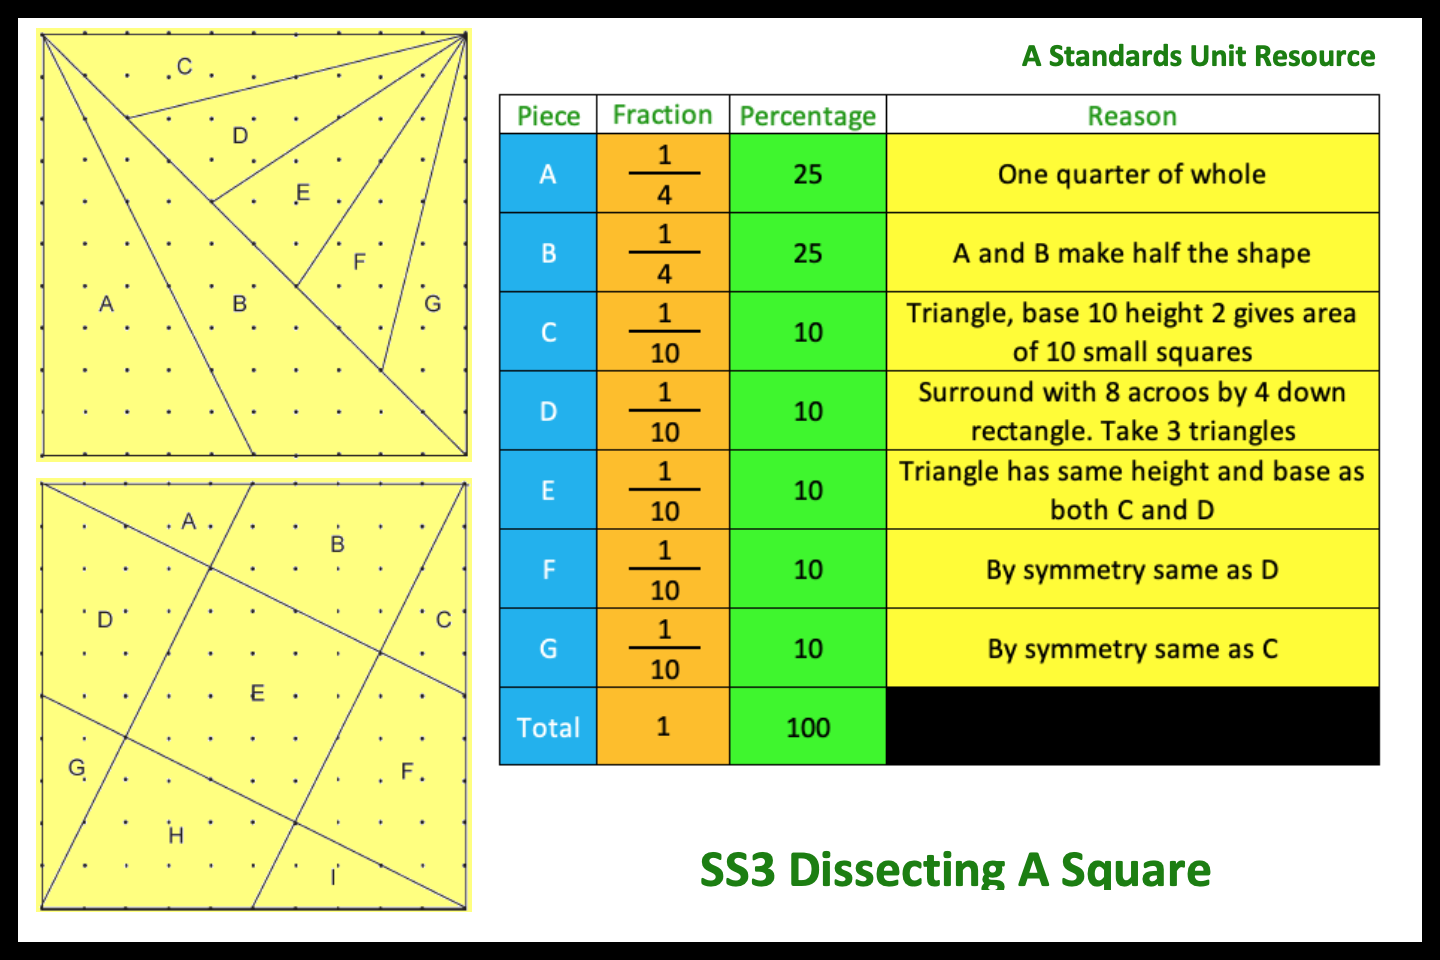 SS3 Dissecting A Square